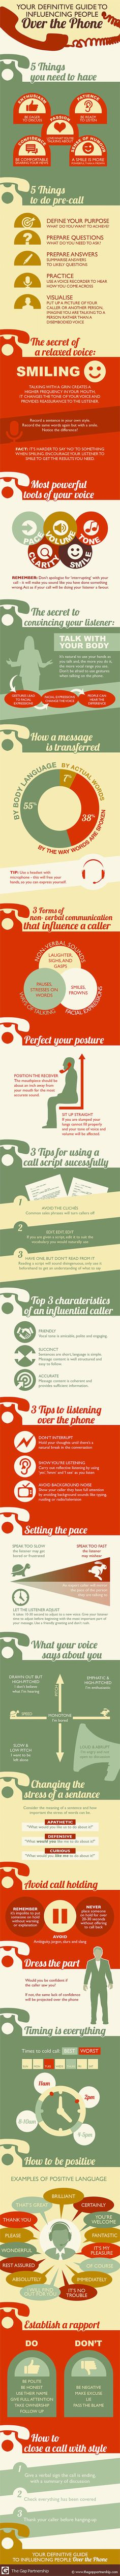 How to: Influence People Over the Phone [Infographic]